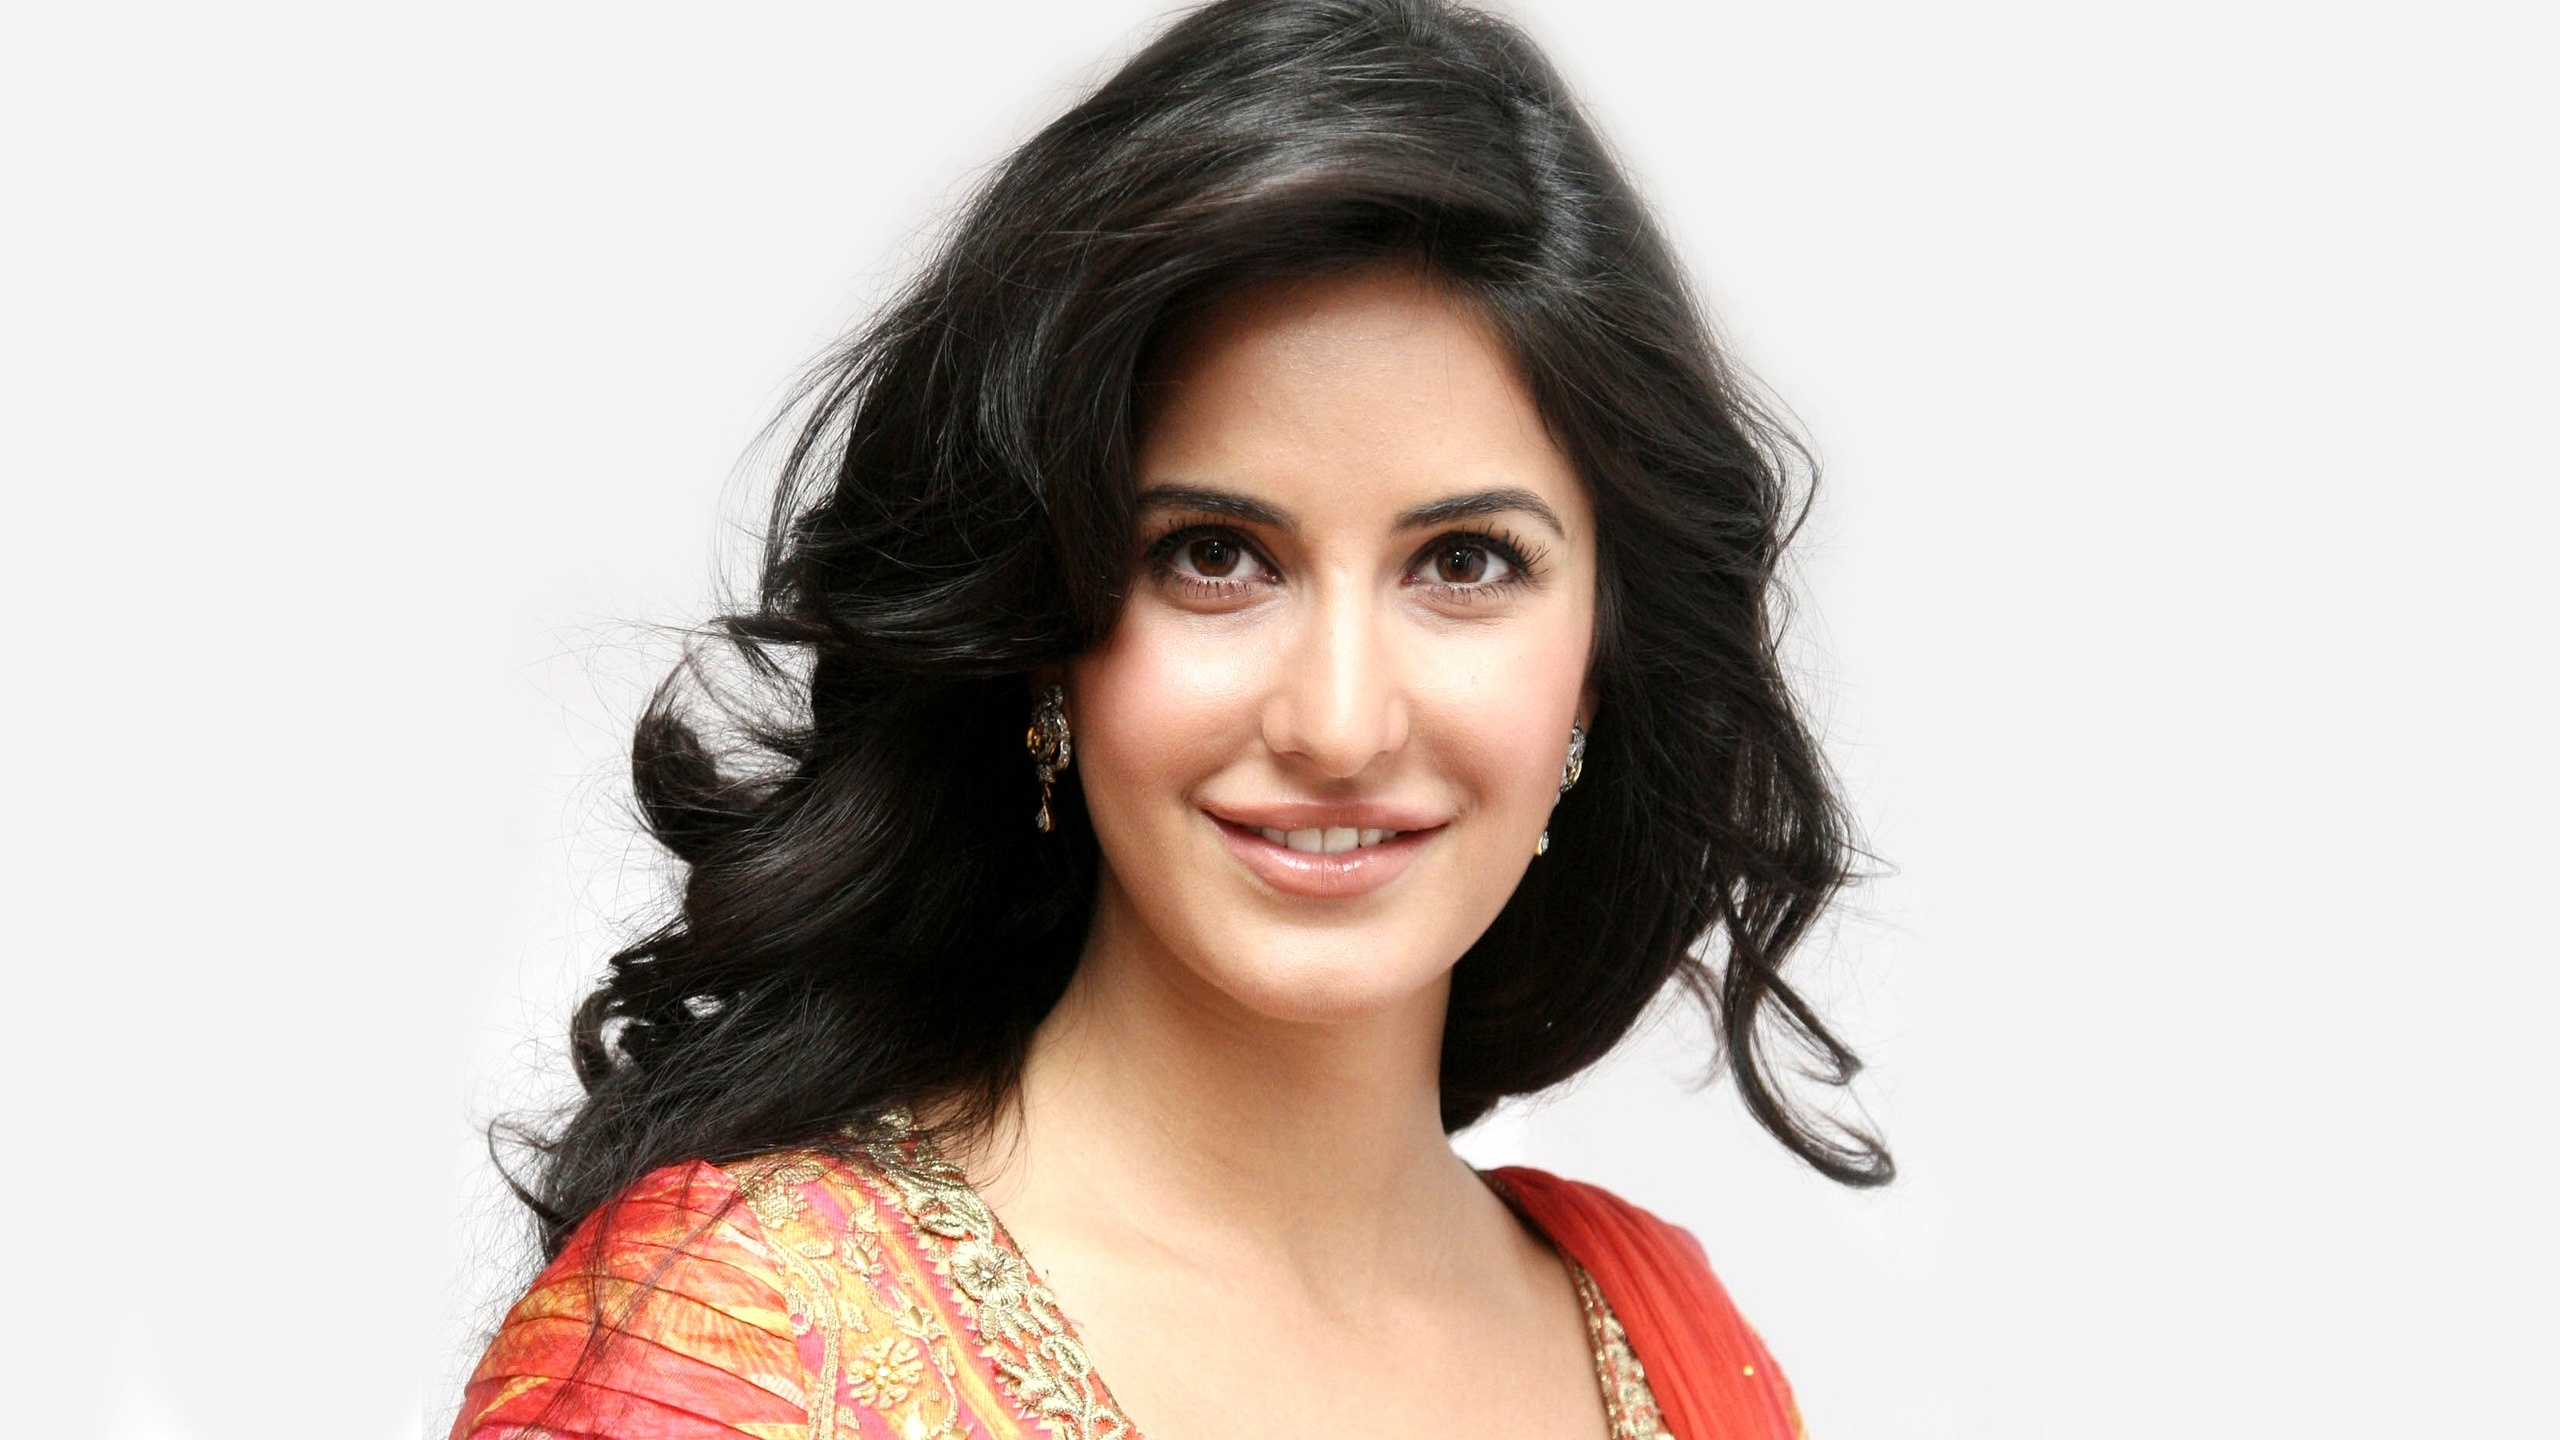 katrina kaif new 2010 wallpapers in jpg format for free download